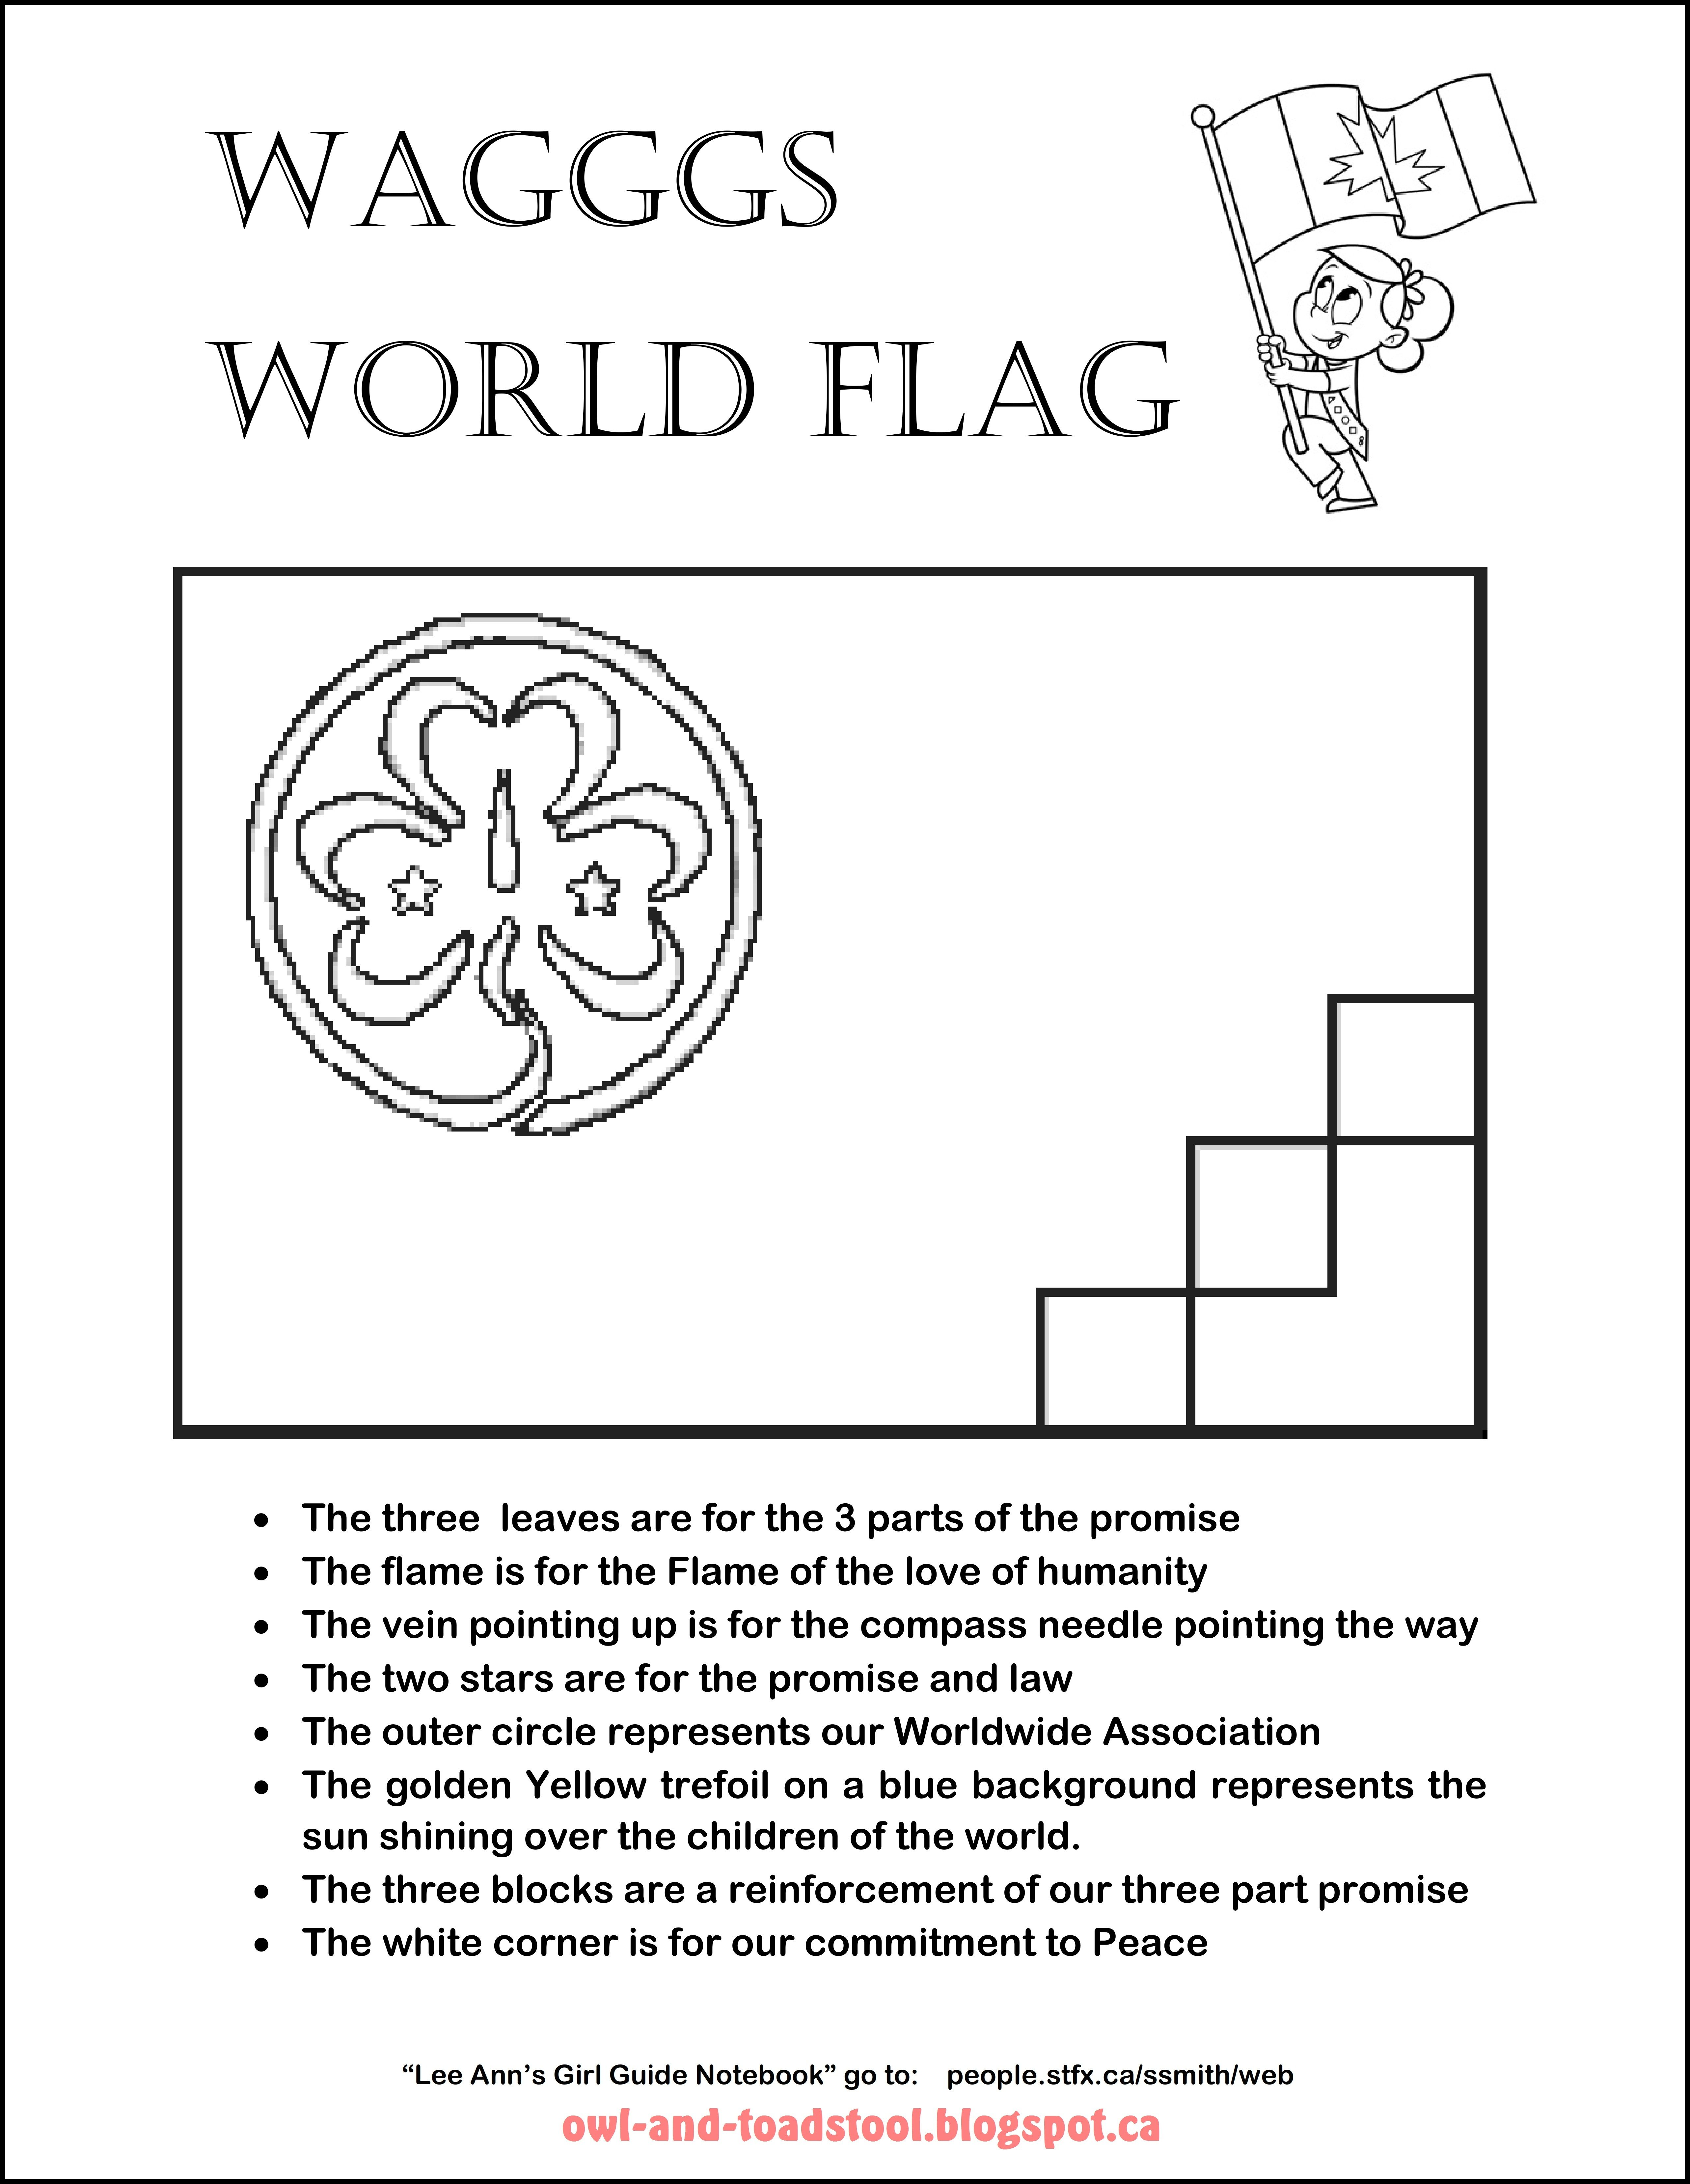 Wagggs World Flag Colouring Page Owl And Toadstool